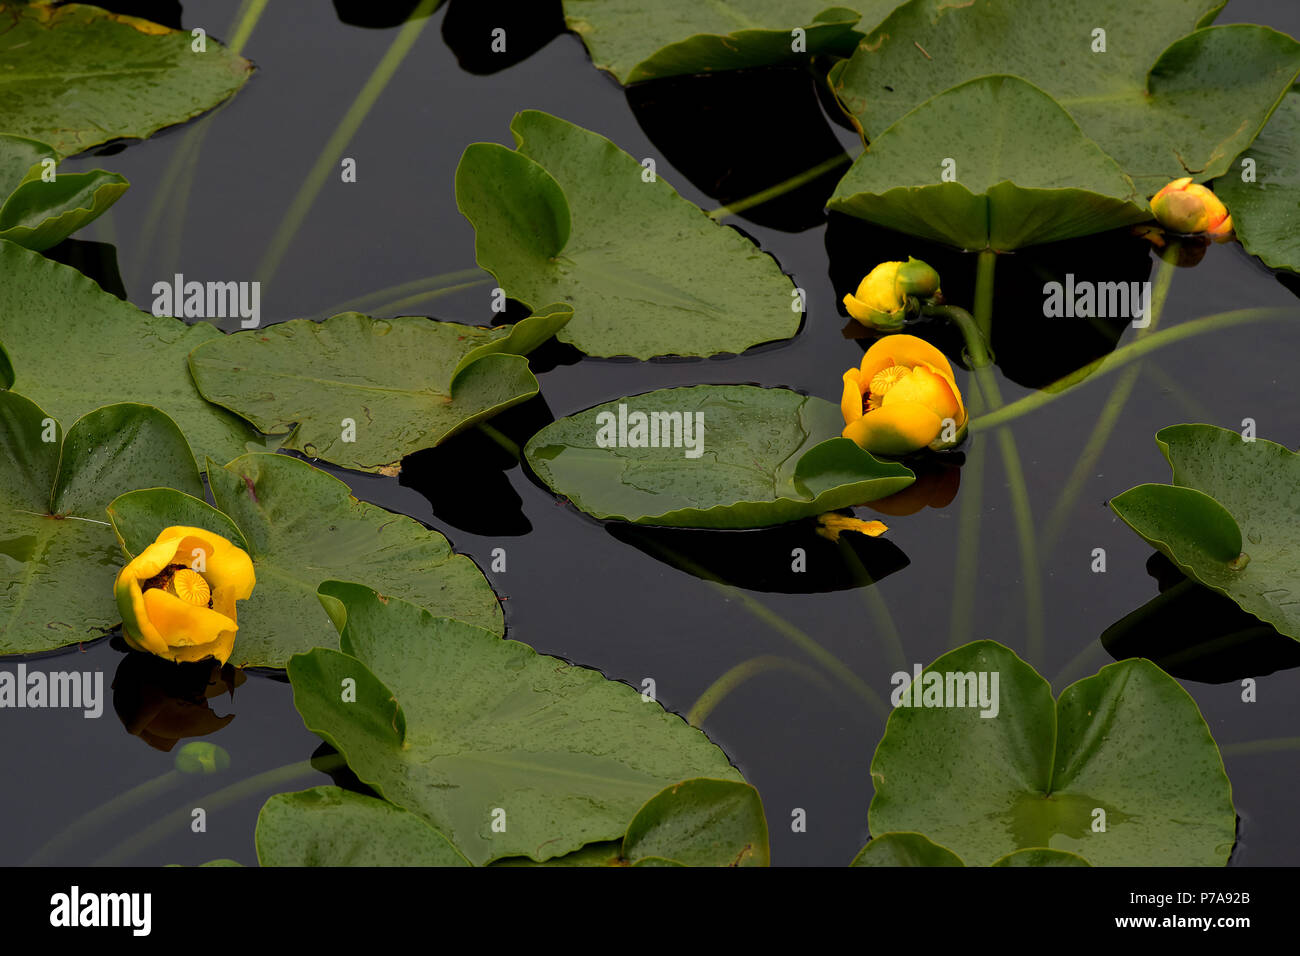 Yellow pond lily is a perennial waterlily like plant that can form yellow pond lily is a perennial waterlily like plant that can form extensive stands in shallow waters of lakes and ponds mightylinksfo